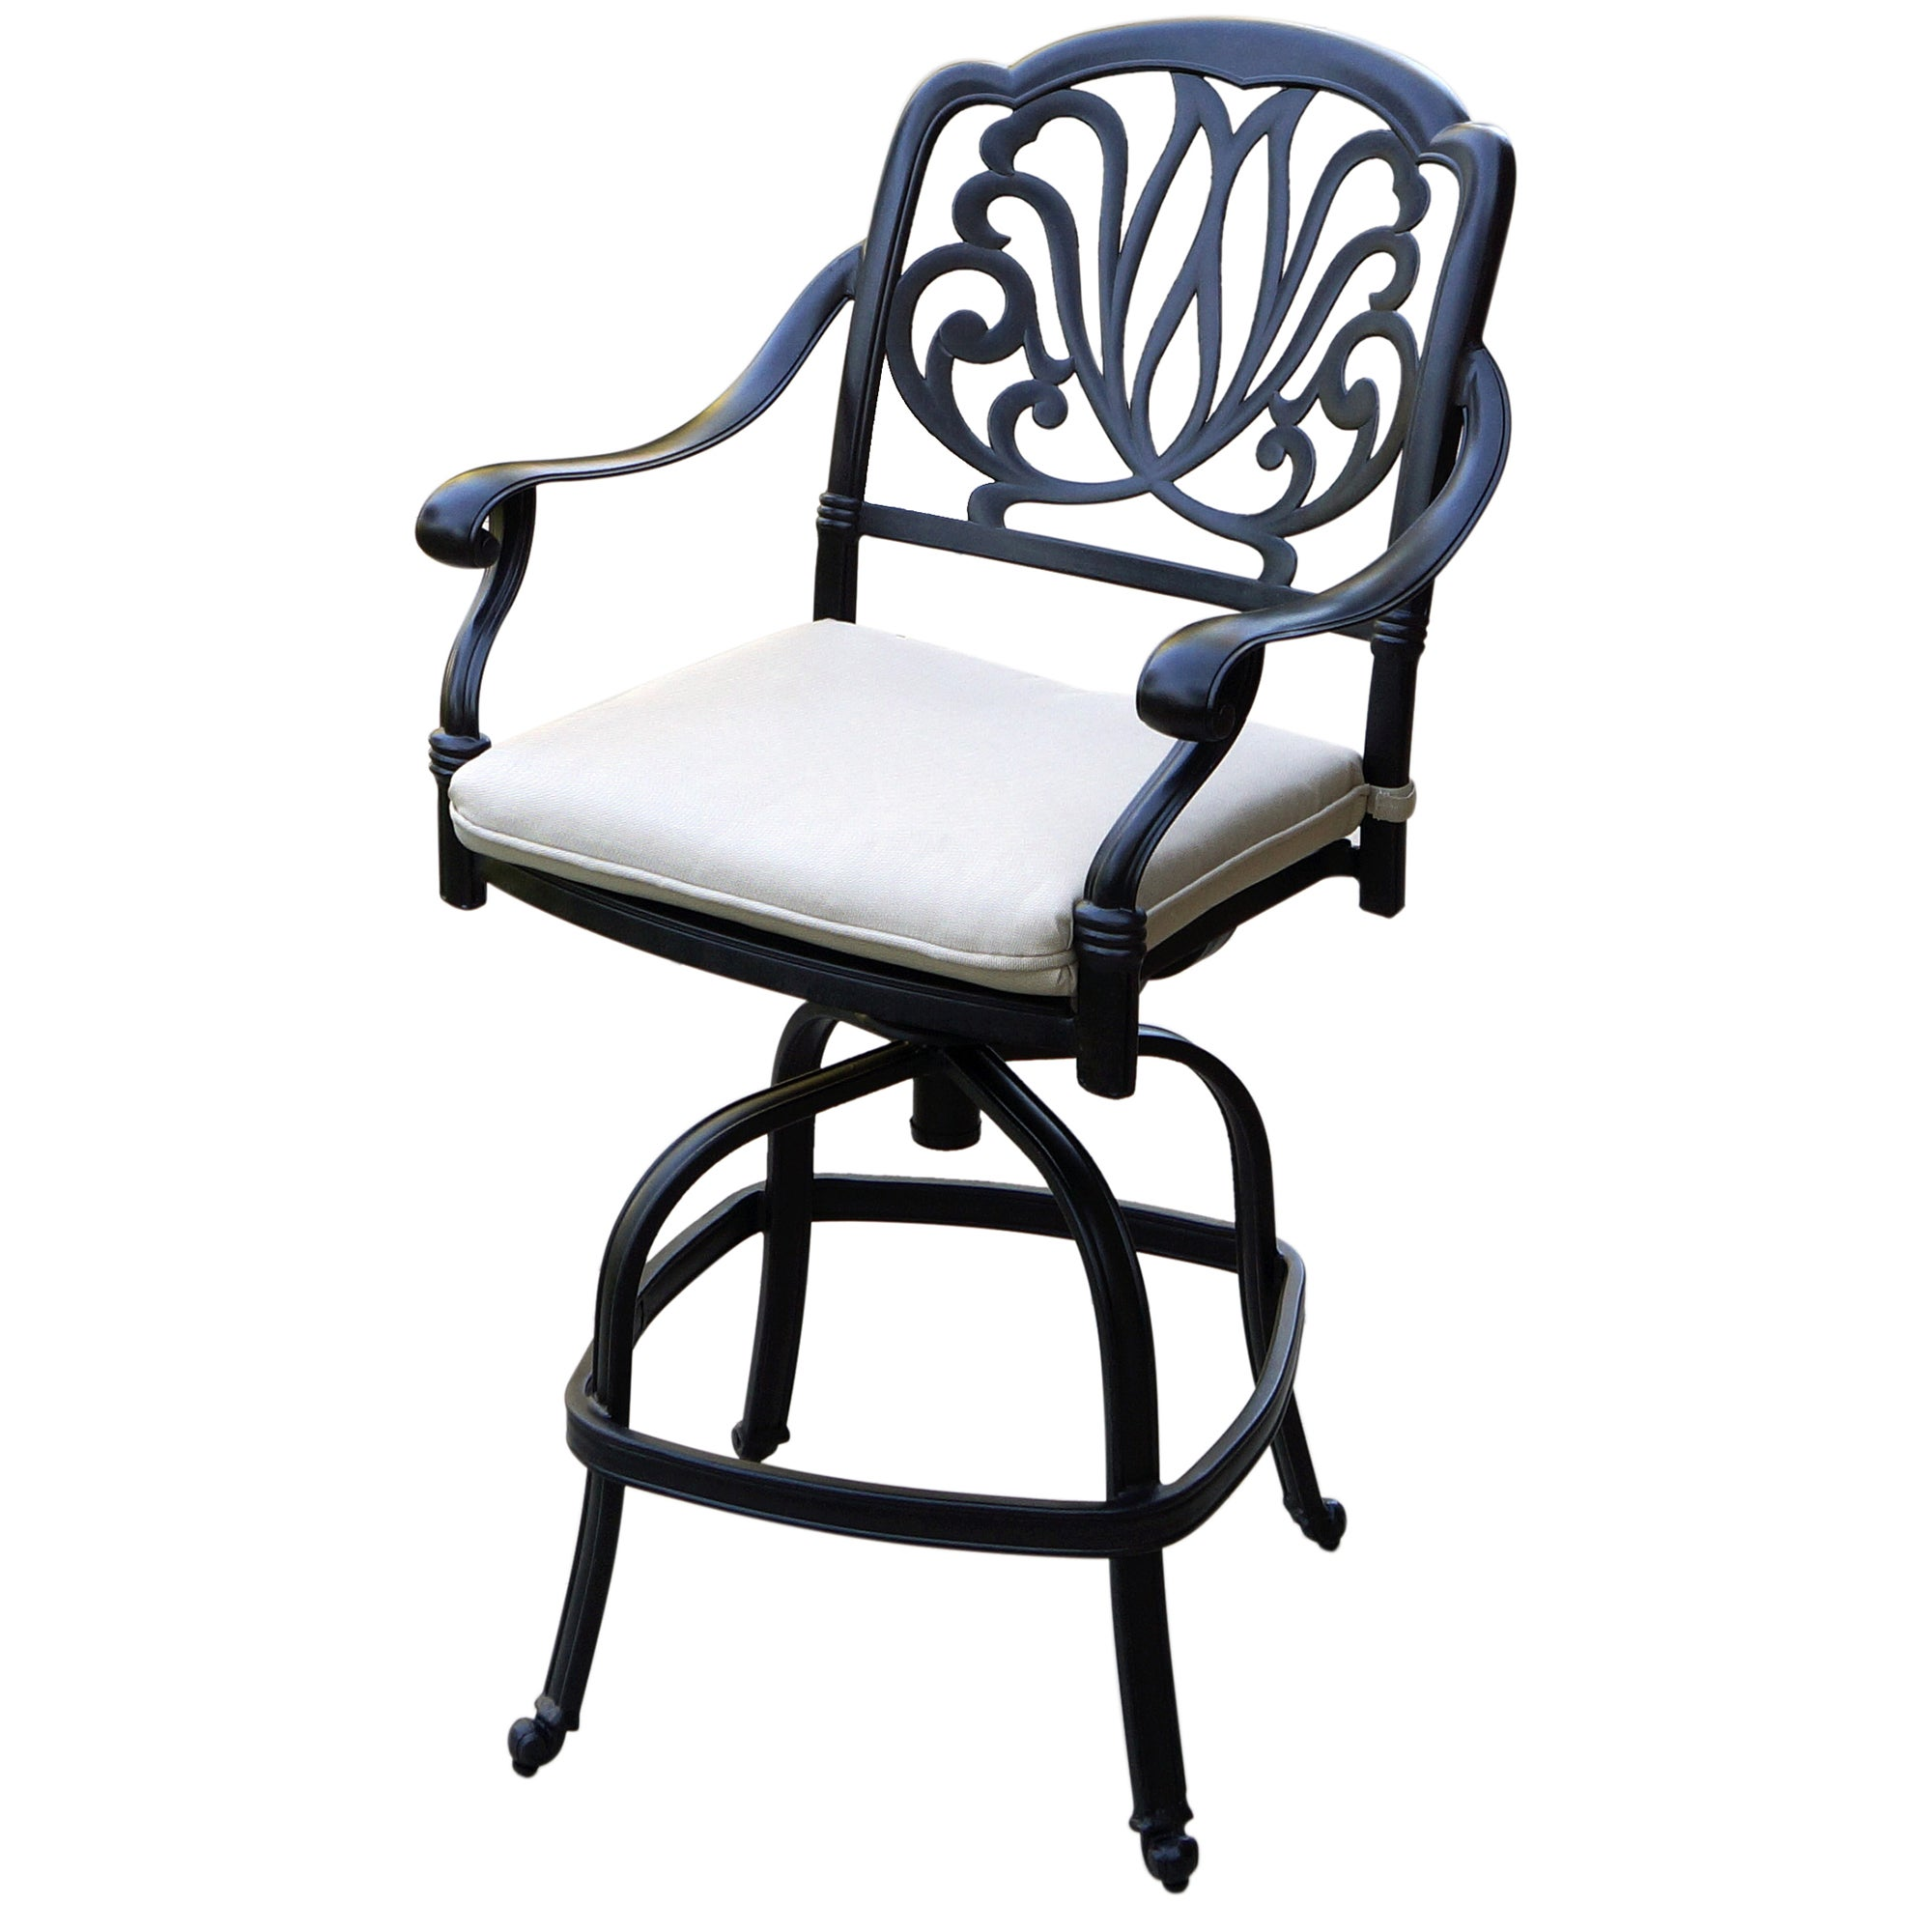 Astounding Sicily 5 Piece Bar Set With Seat Cushion 42 Inch Counter Height Onthecornerstone Fun Painted Chair Ideas Images Onthecornerstoneorg